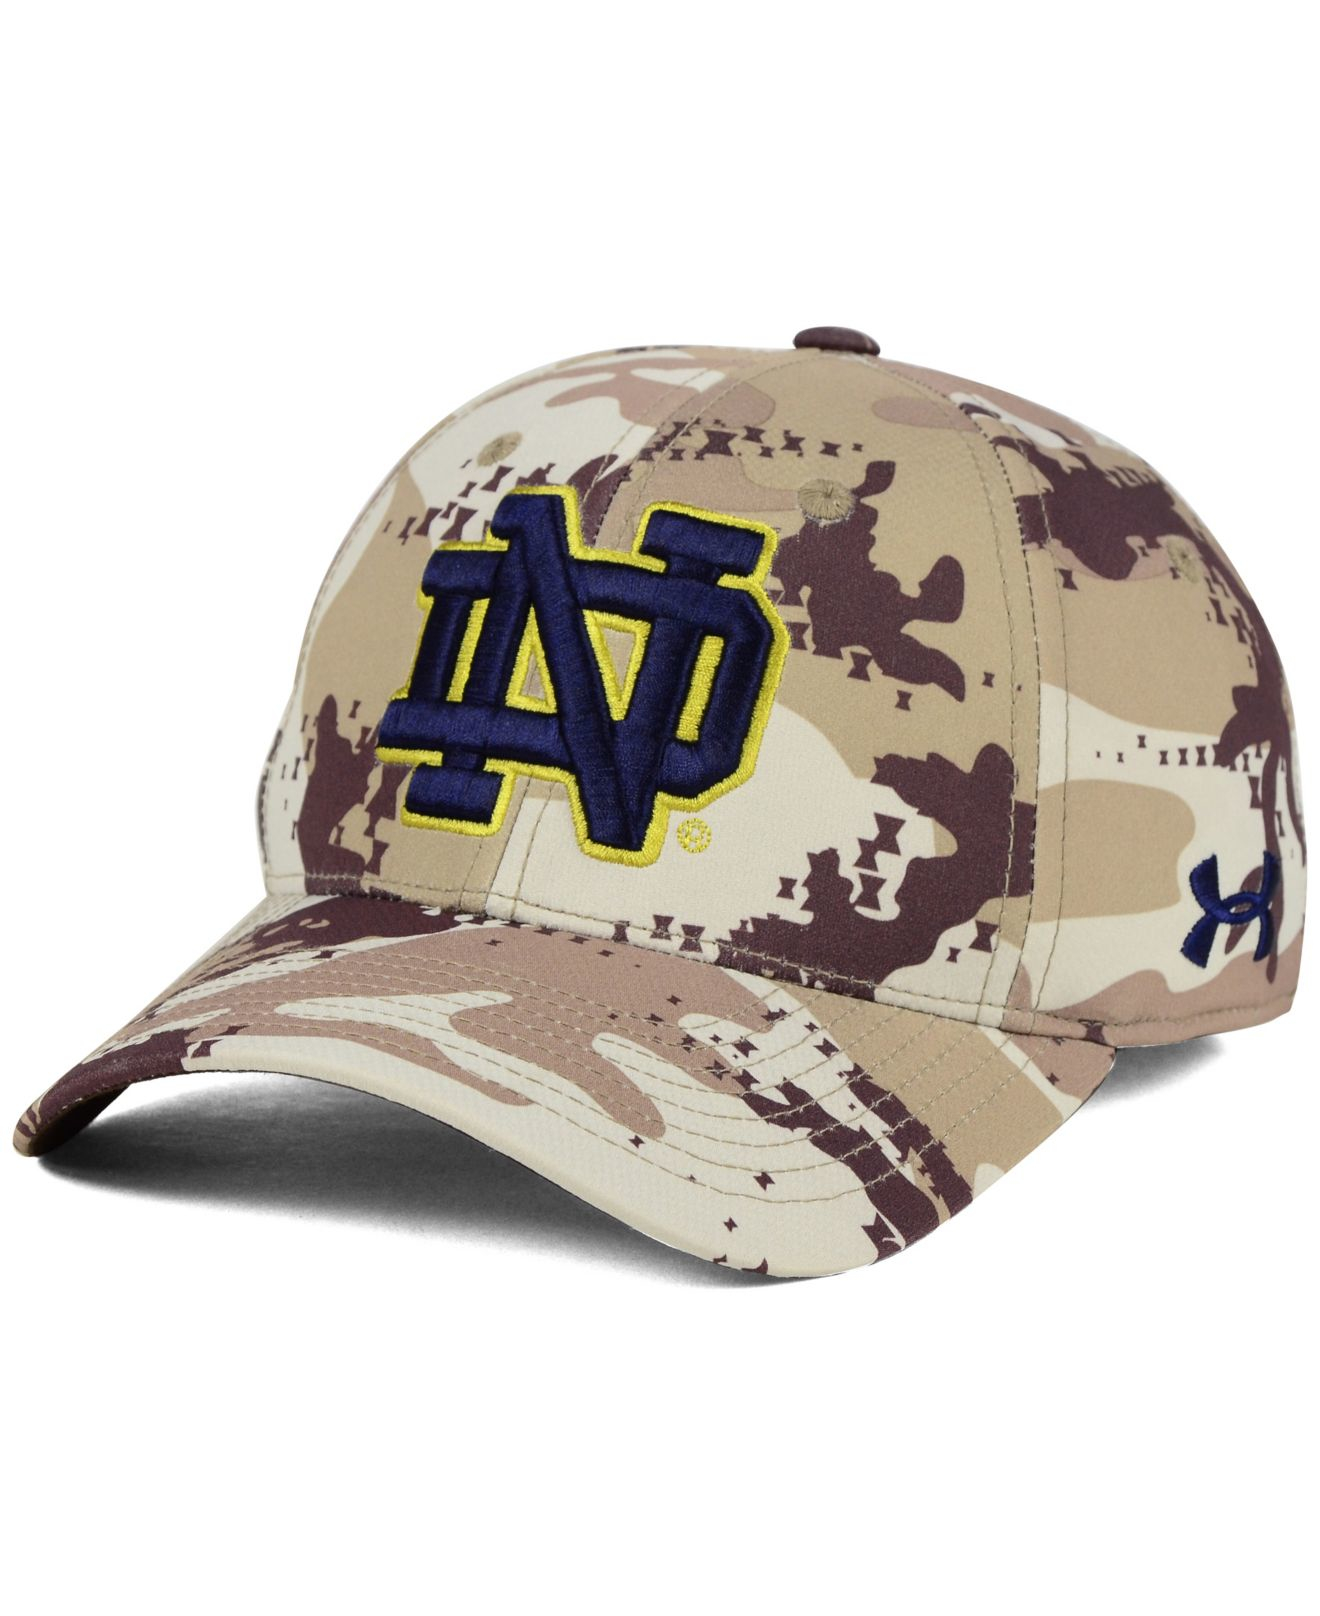 separation shoes 998eb 760c4 uk lyst under armour notre dame fighting irish camo stretch cap in 8789b  a66c8